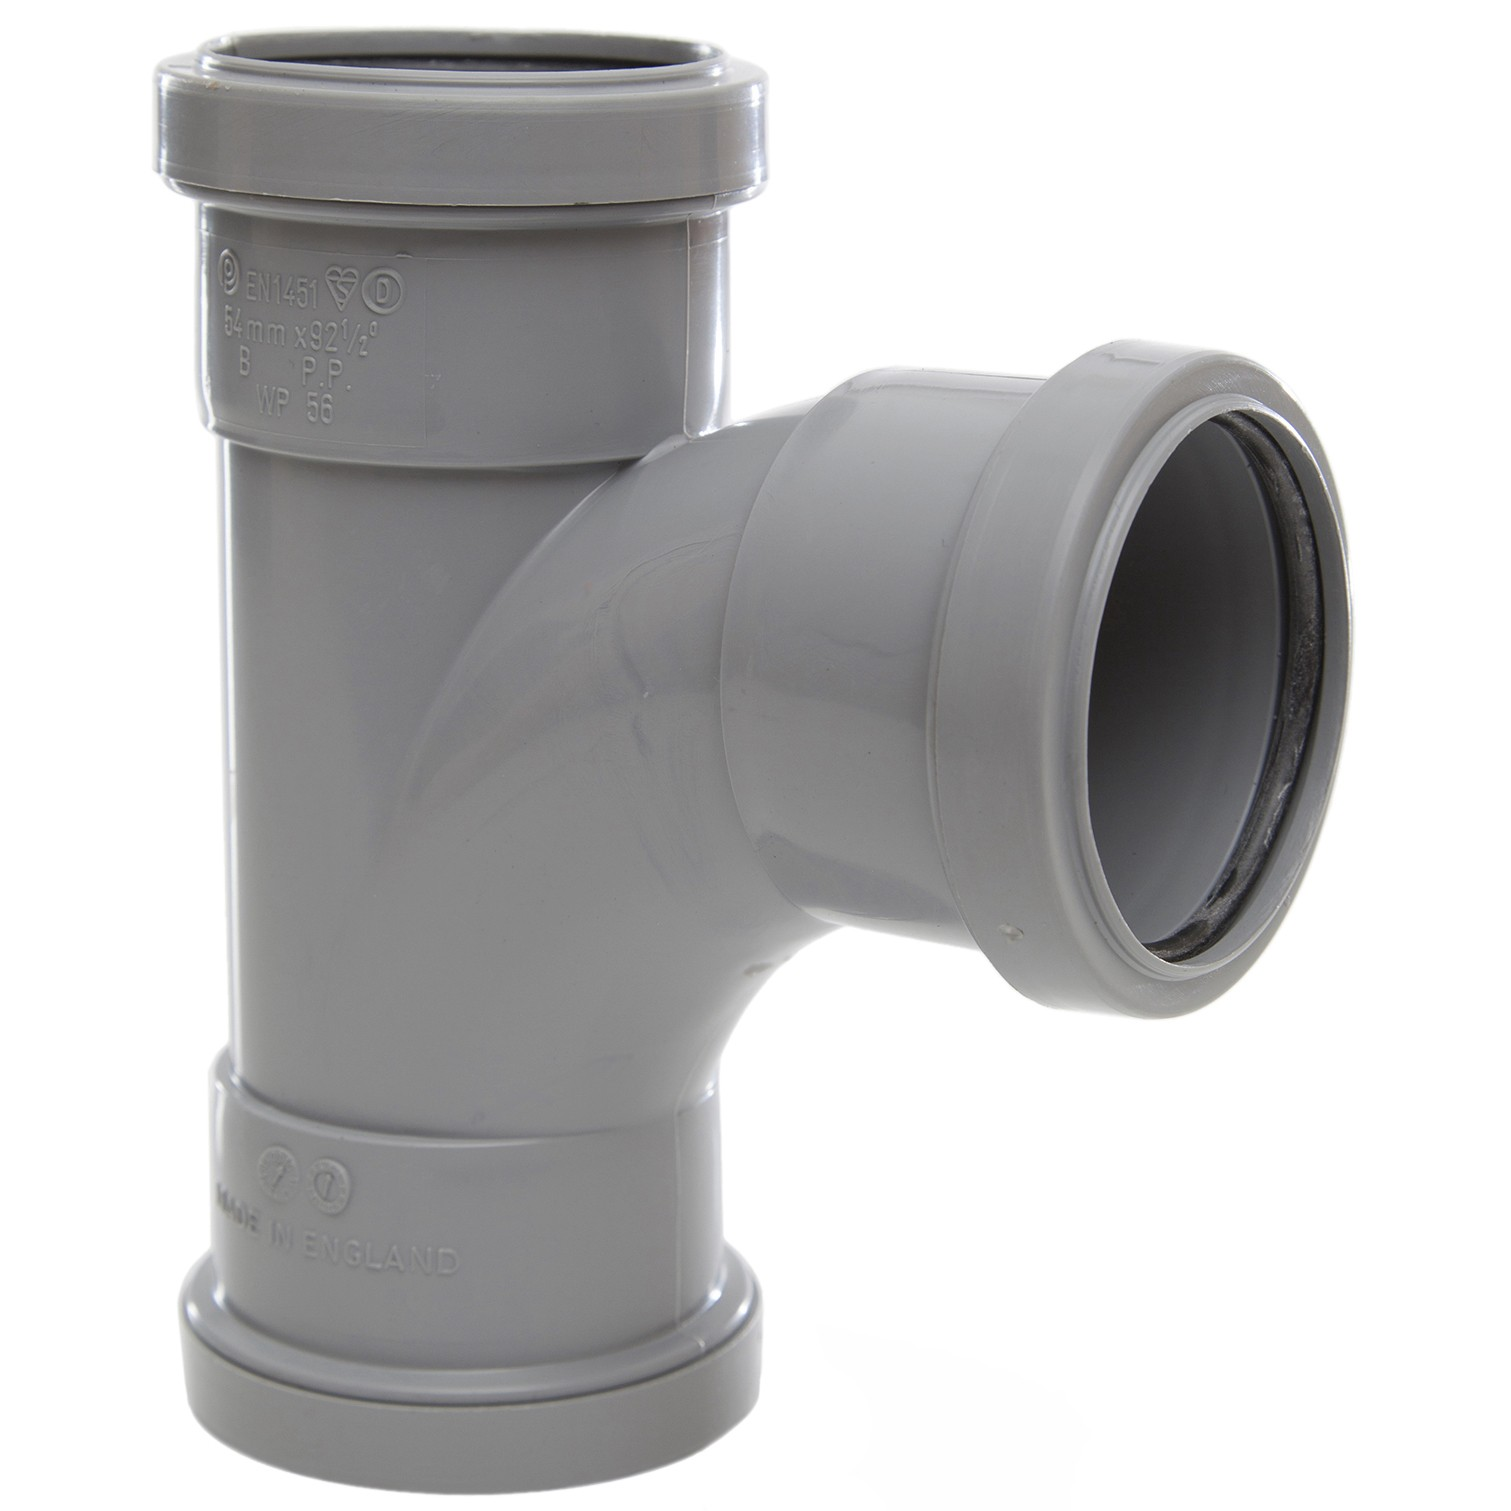 Polypipe 50mm Push Fit Waste 91.25 Degree Swept Tee - Grey